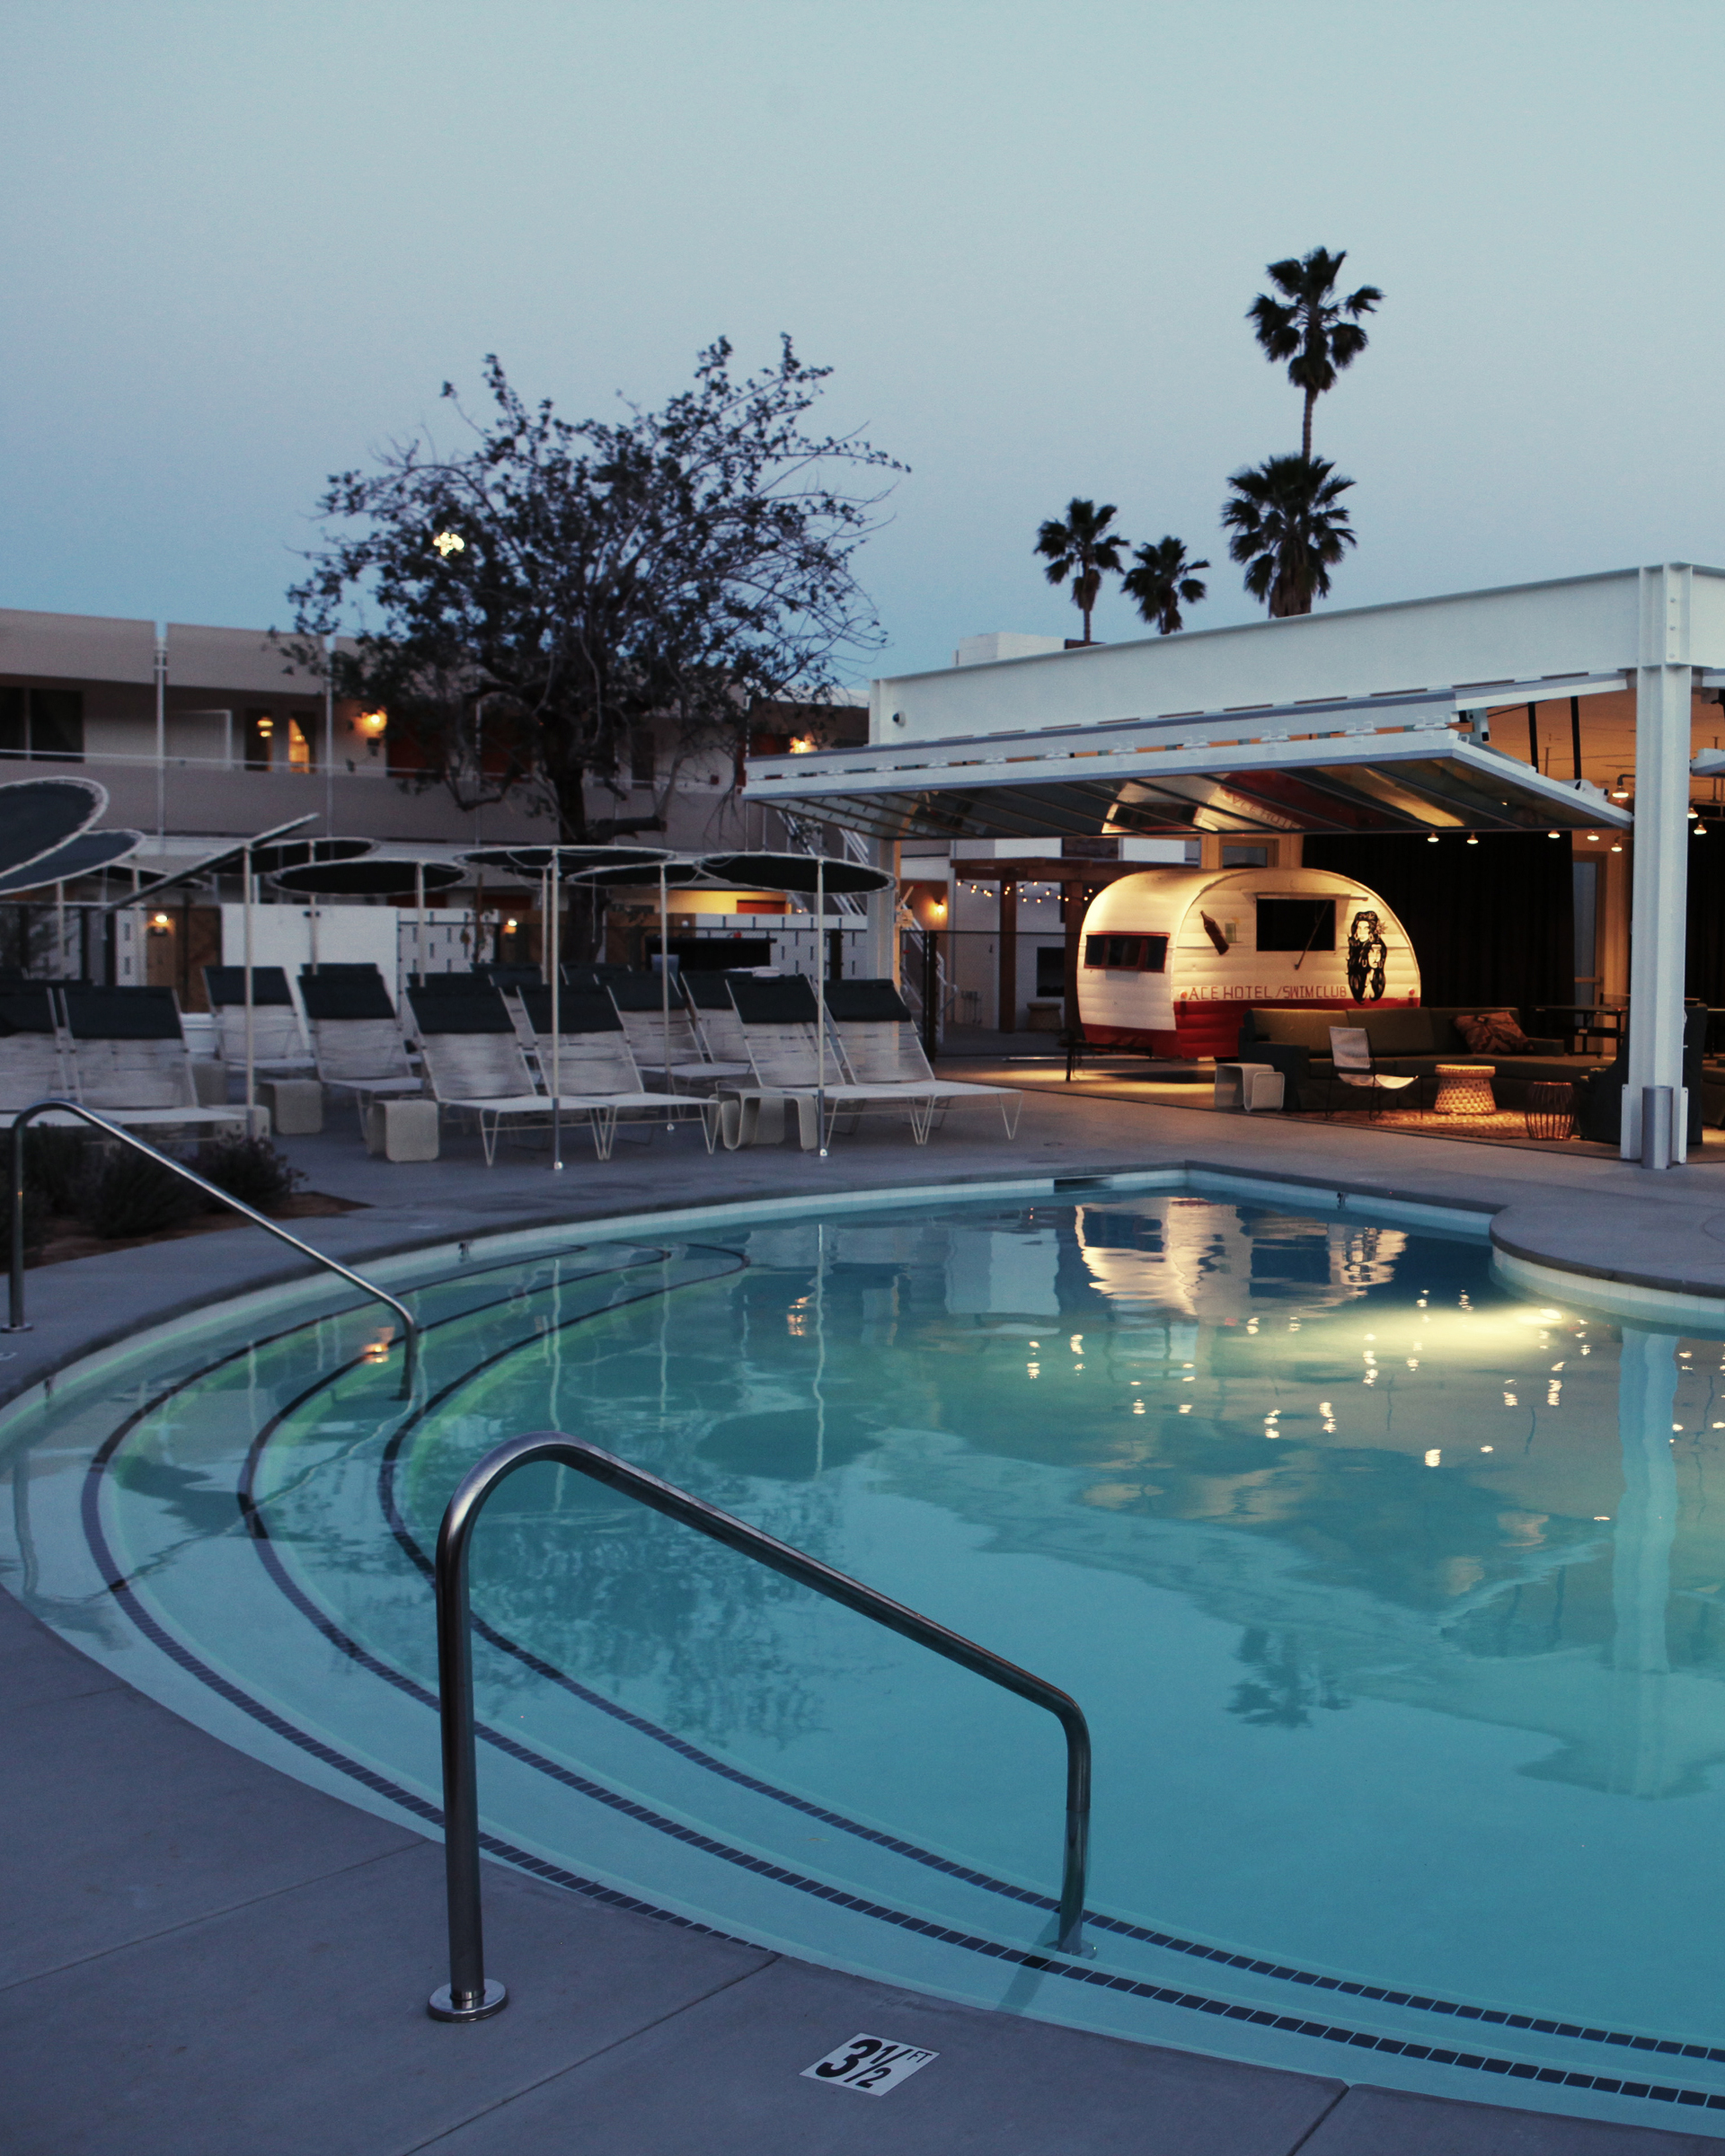 mrmrssmith-romantic-proposals-palm-springs-ace-hotel-1014.jpg